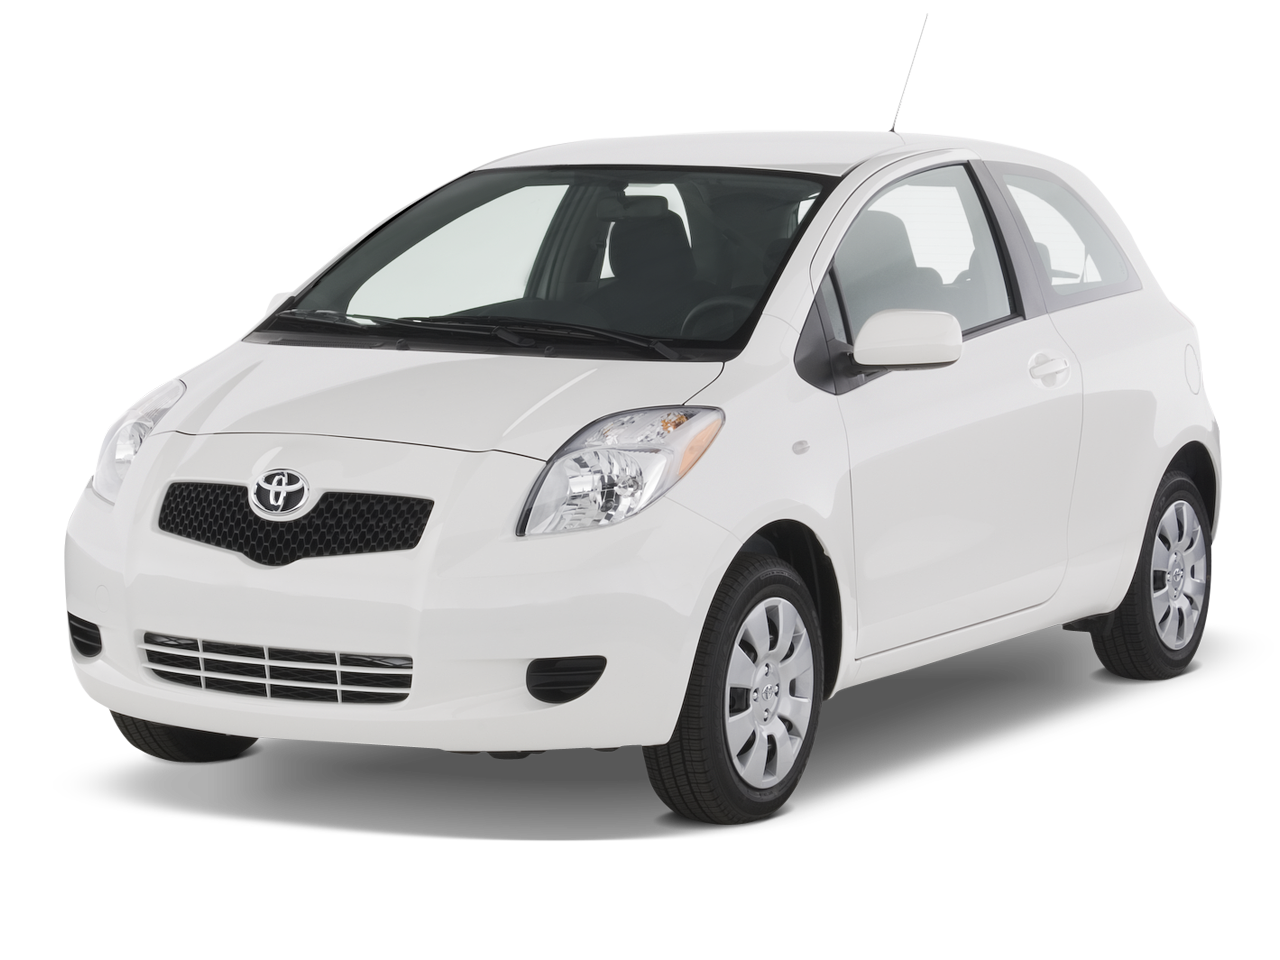 2008 Toyota Yaris Toyota Compact Sedan Review